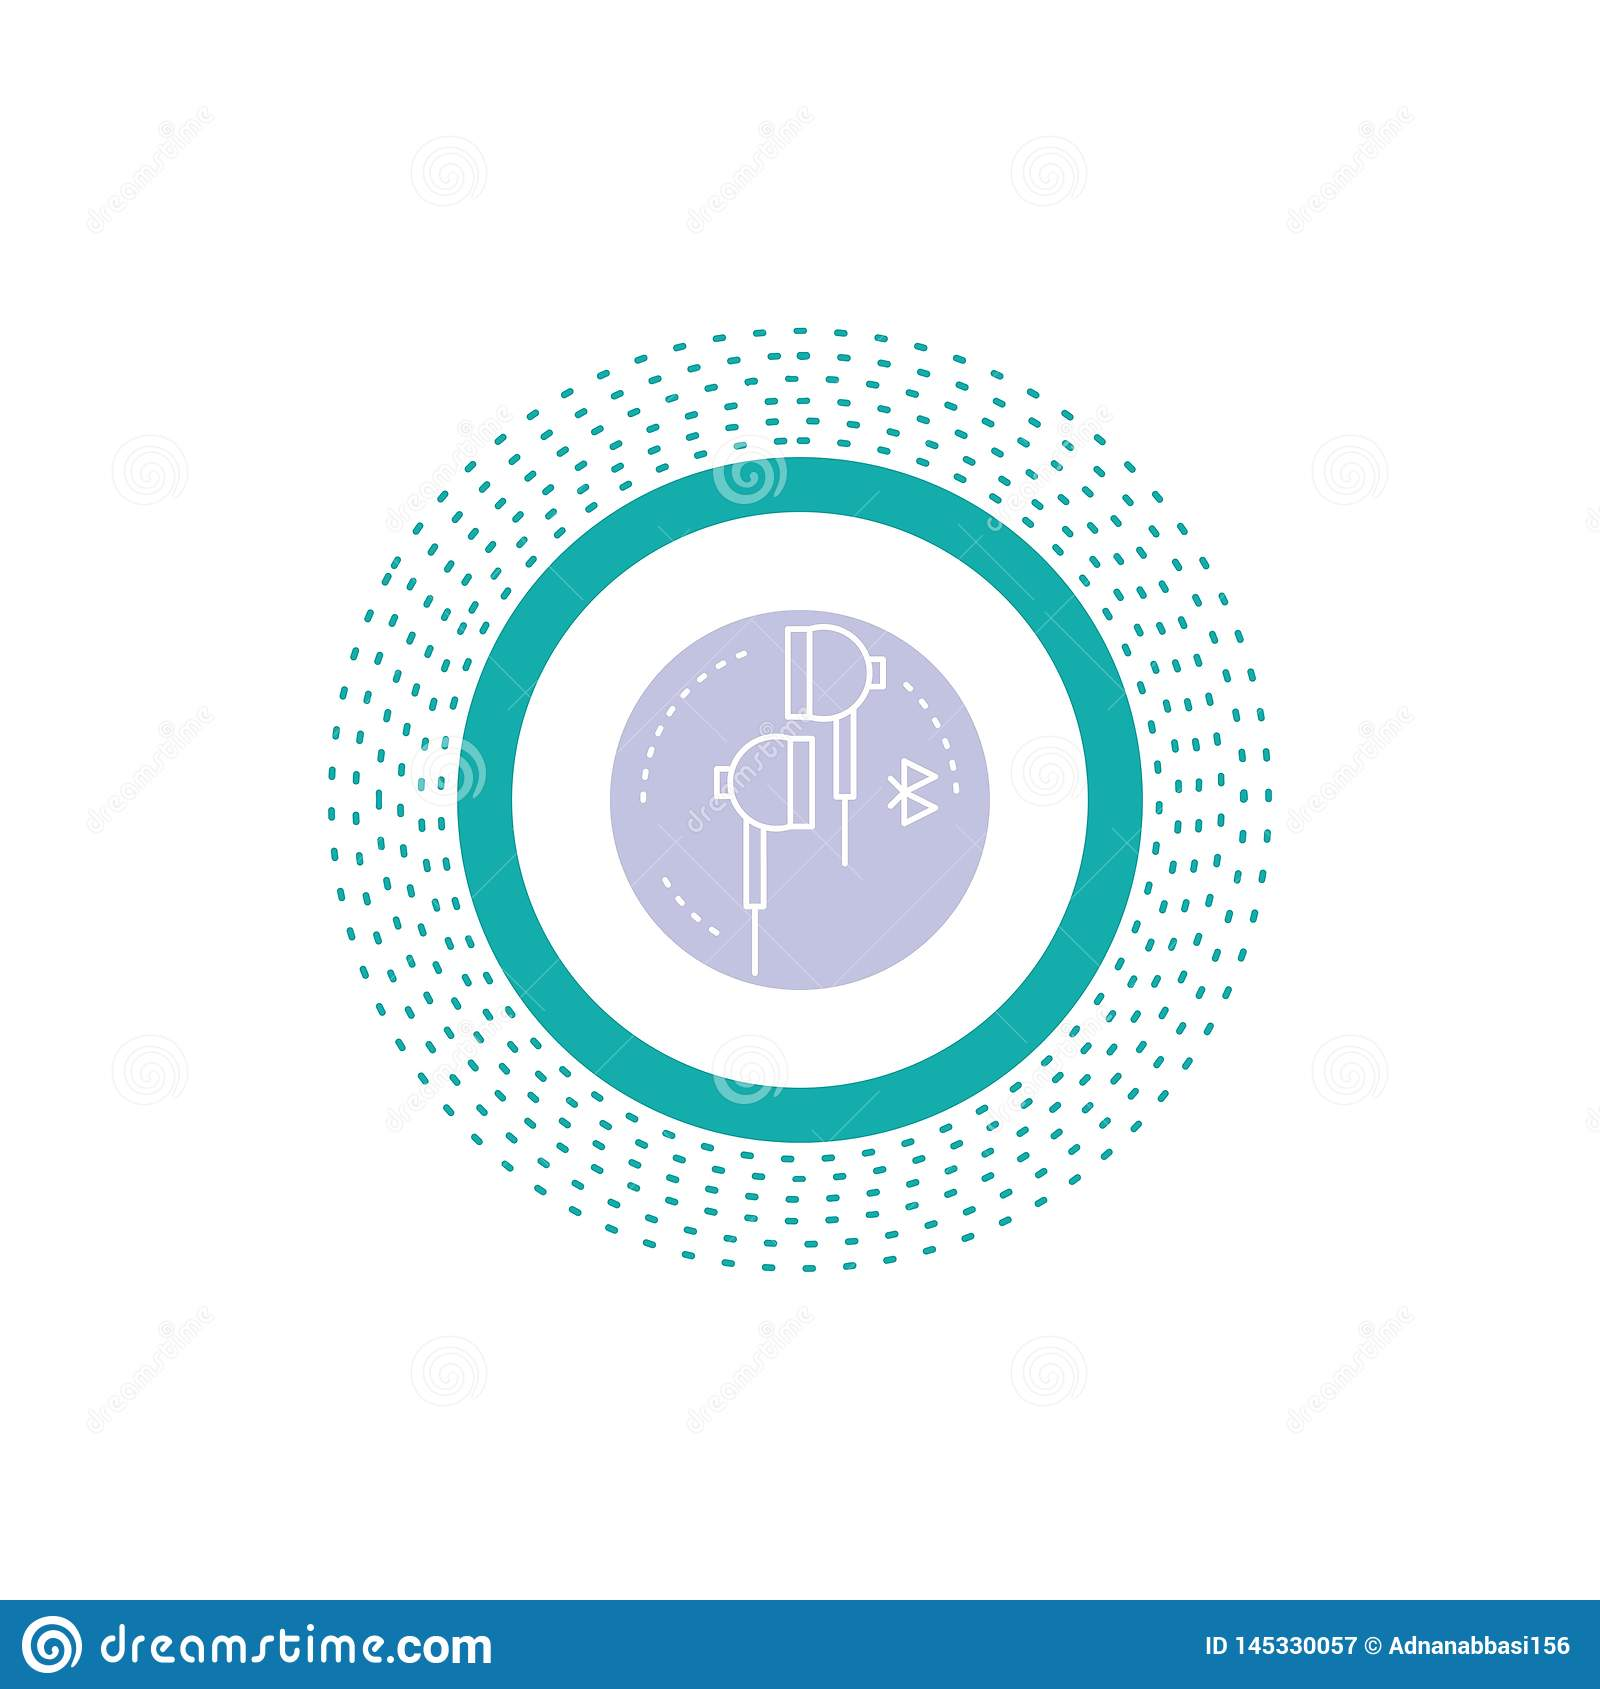 Headphone, ear, phone, bluetooth, music Glyph Icon. Vector isolated illustration